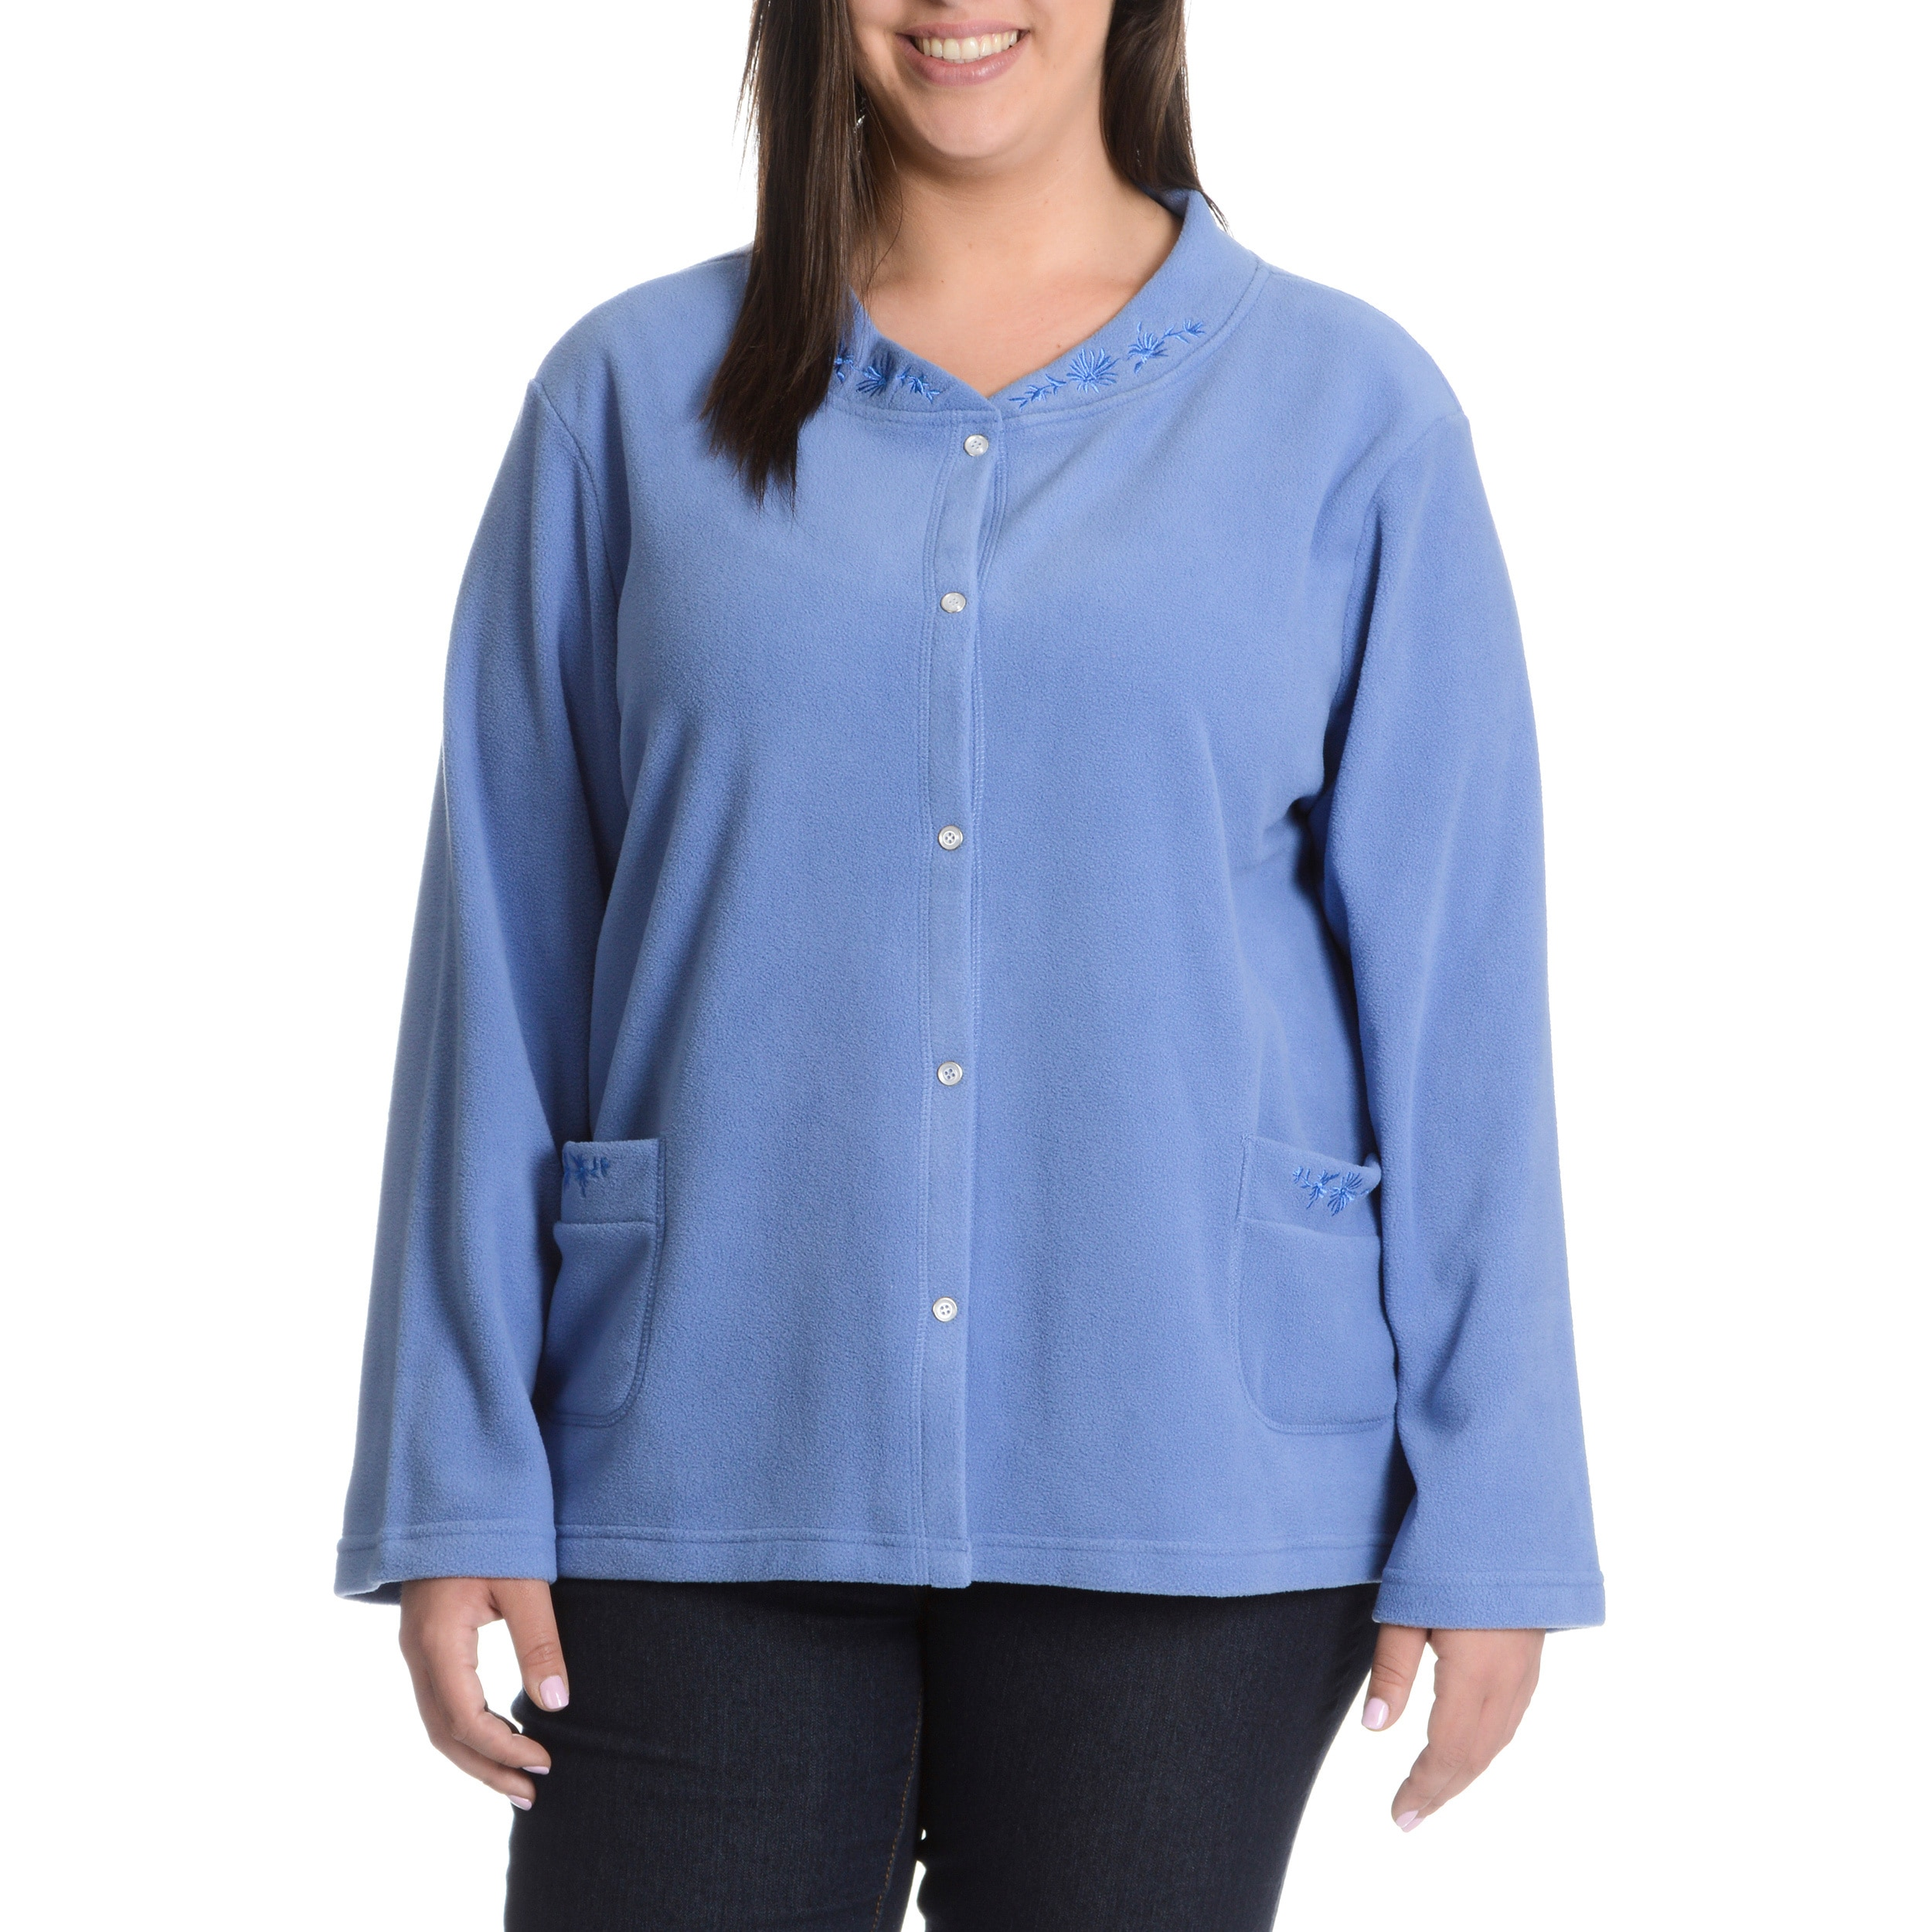 80960f8b094 Shop La Cera Women s Plus Size Snap Front Jacket with Embroidery Detail -  Free Shipping On Orders Over  45 - Overstock - 10422105